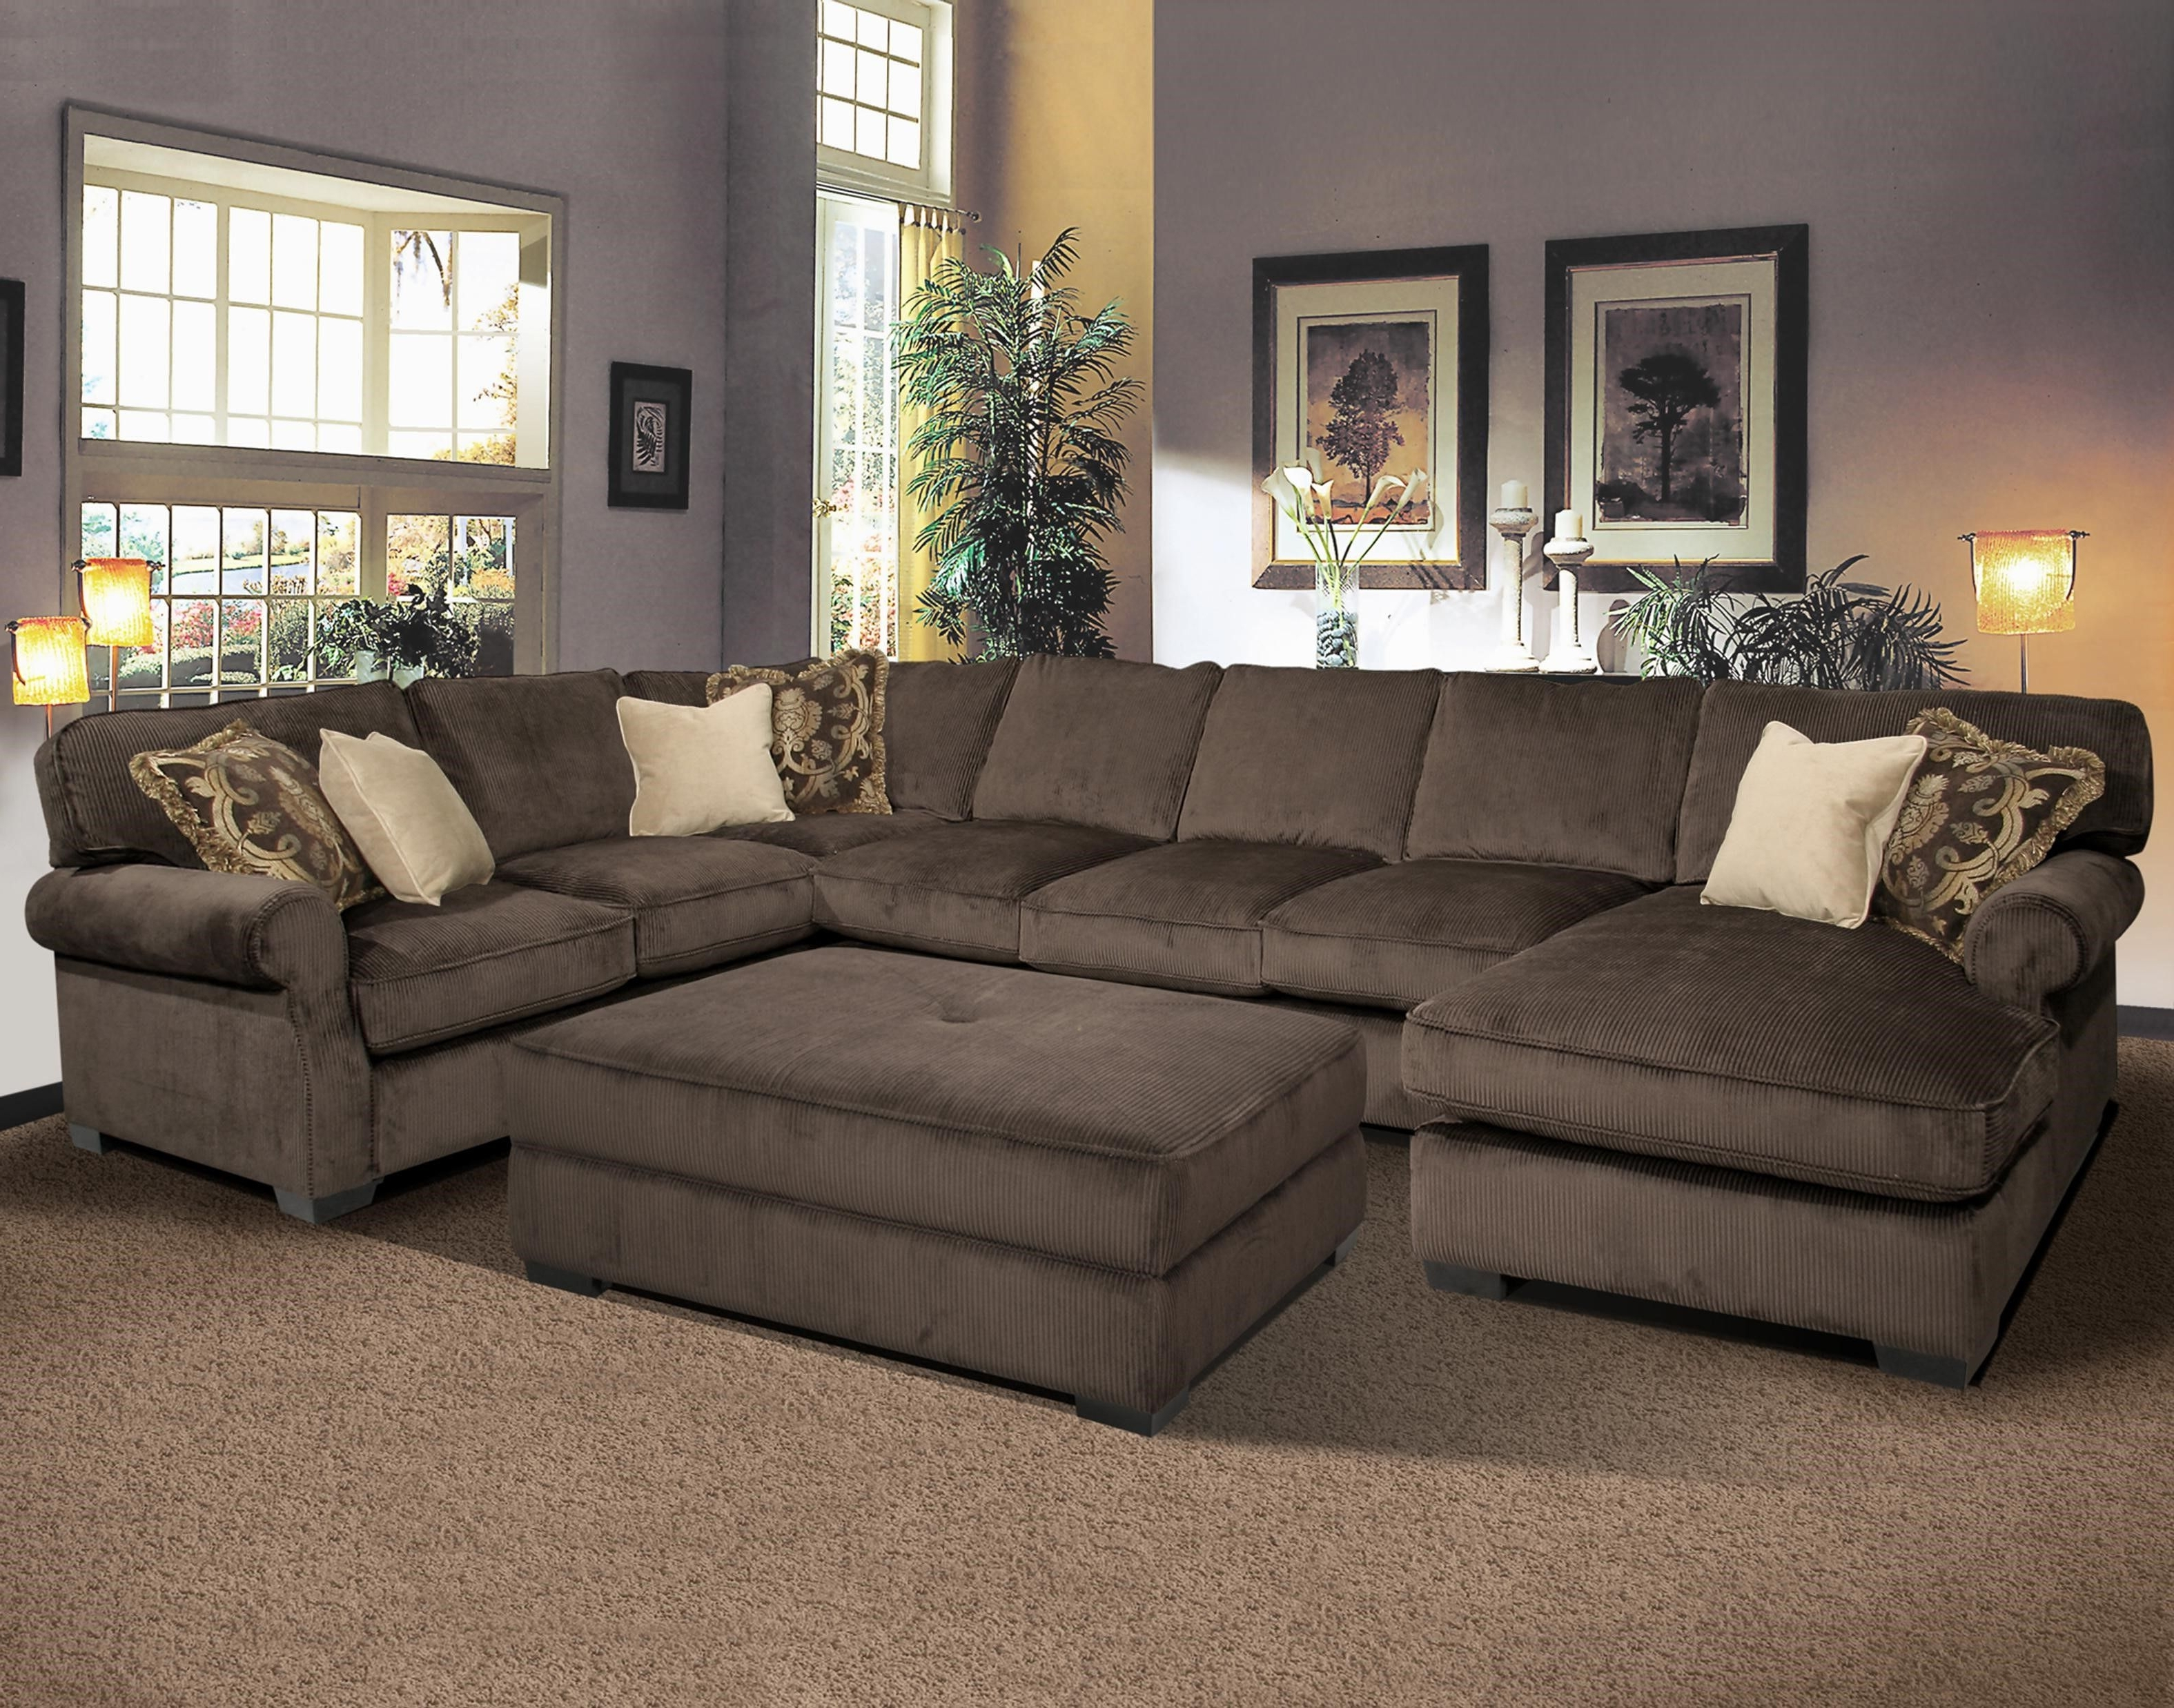 Well Known Comfortable Living Room Sofas Design With Elegant Overstuffed Inside Tulsa Sectional Sofas (Gallery 4 of 20)